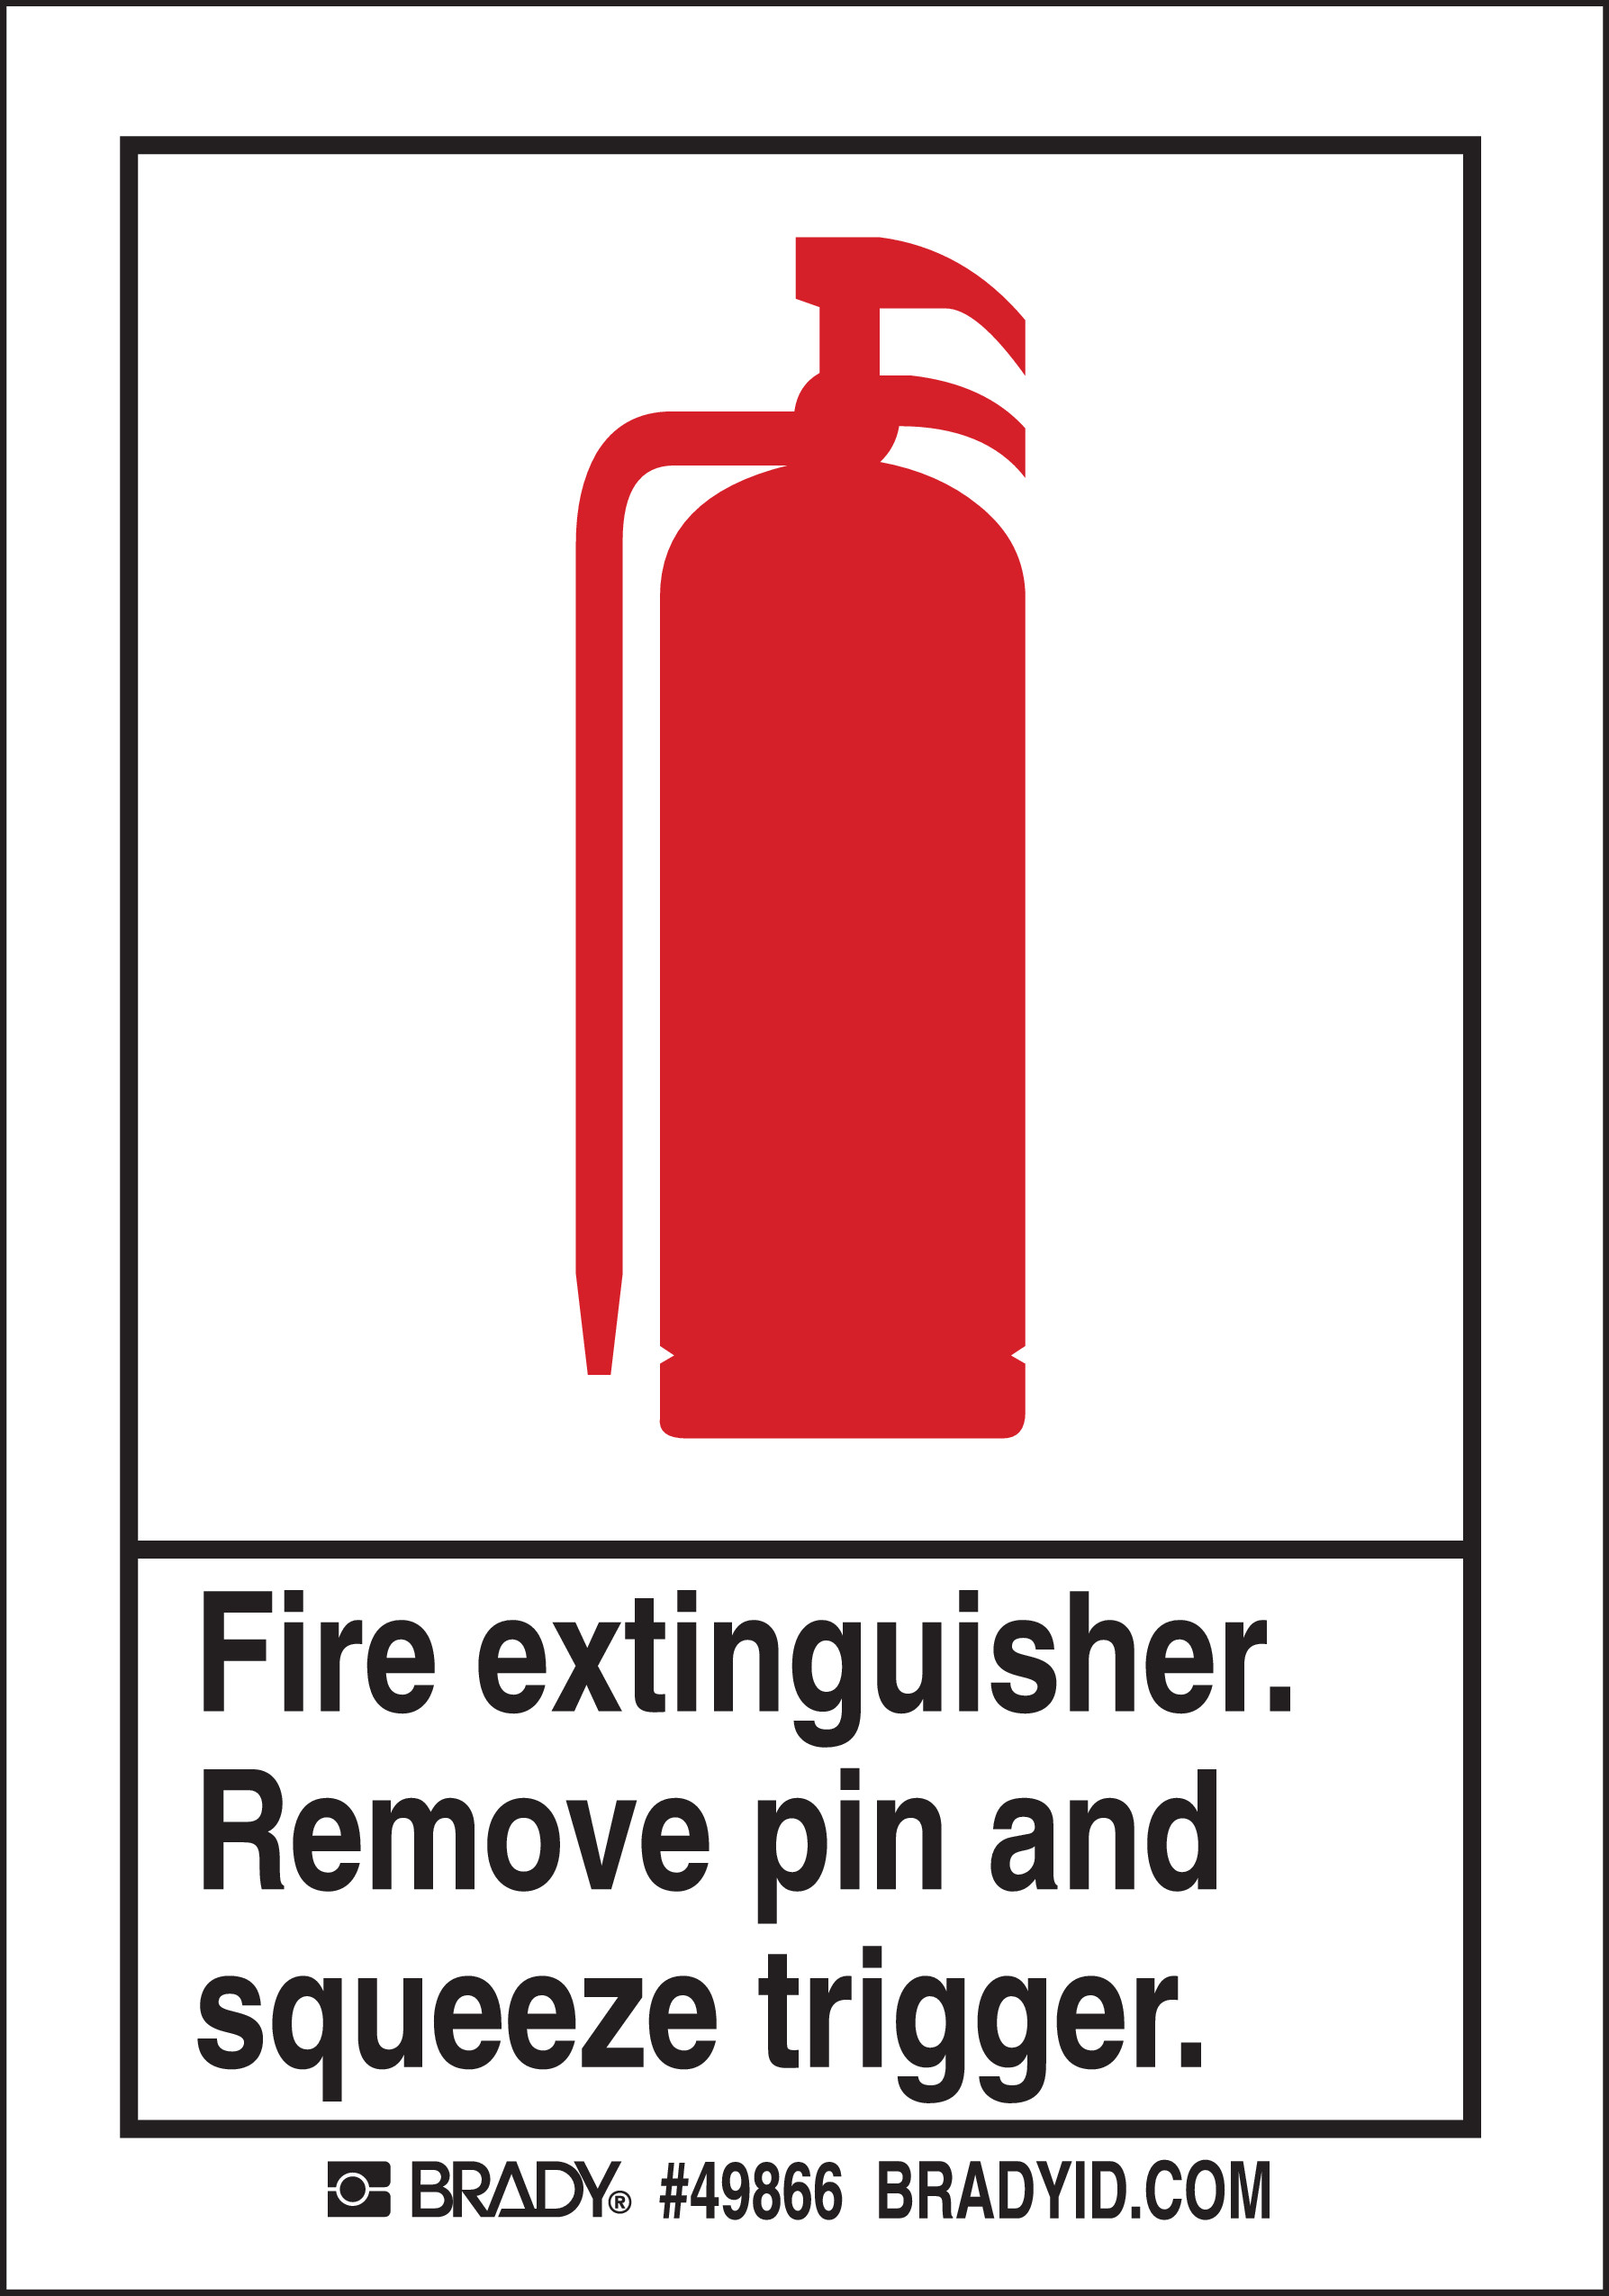 FIRE EXTINGUISHER SIGN  5 Package 49866